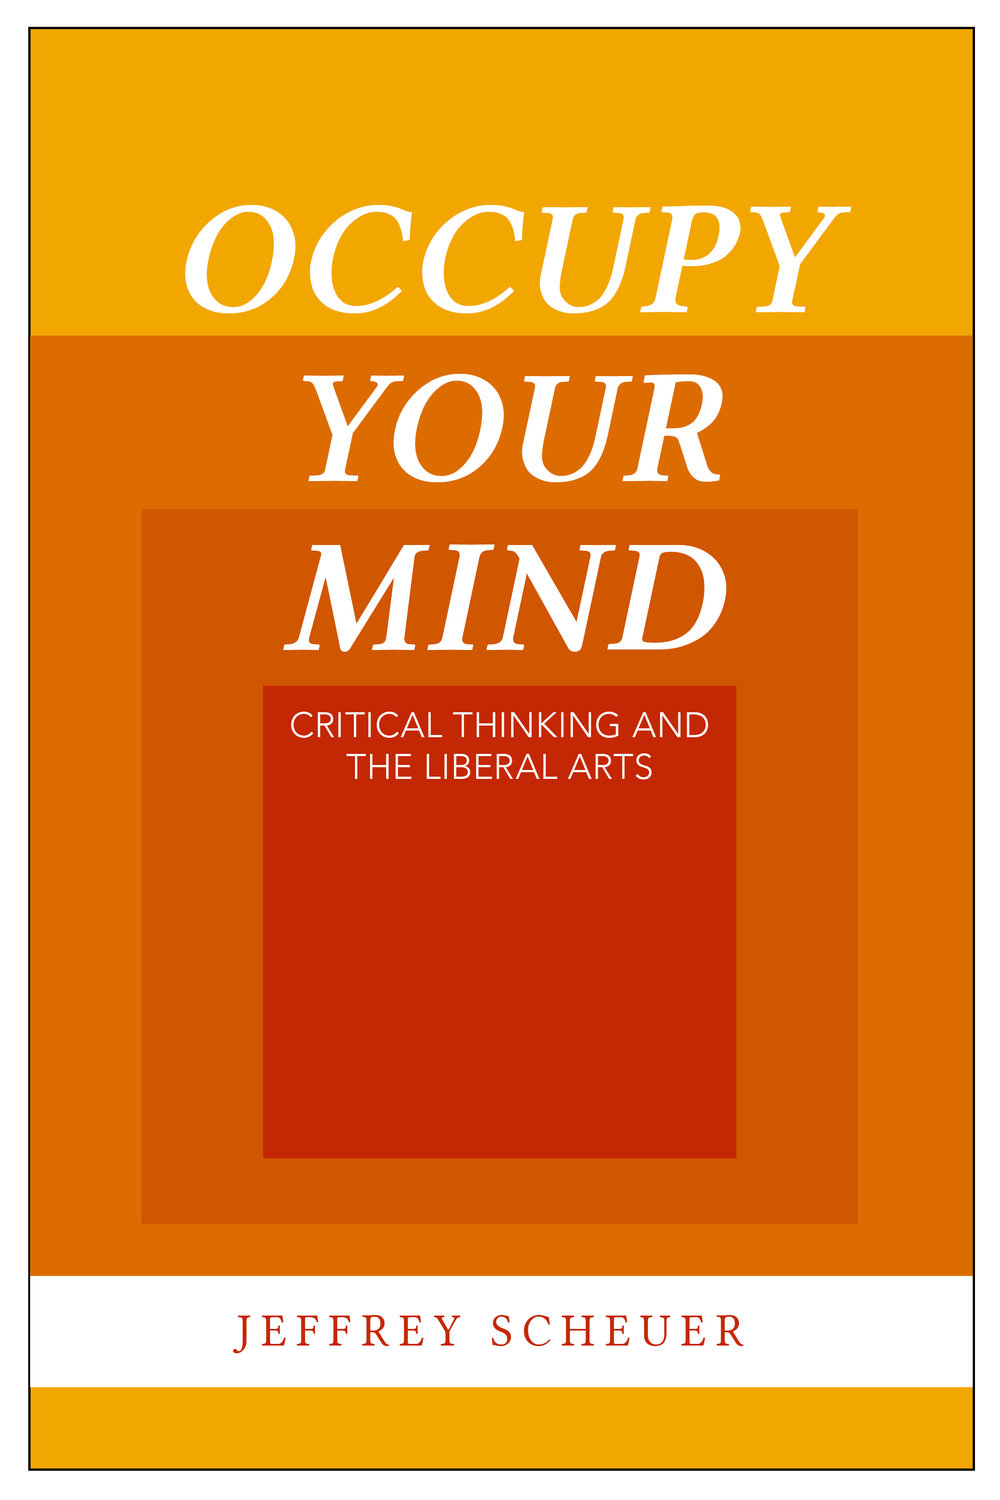 Occupy Your Mind Cover 0914 Final.jpg